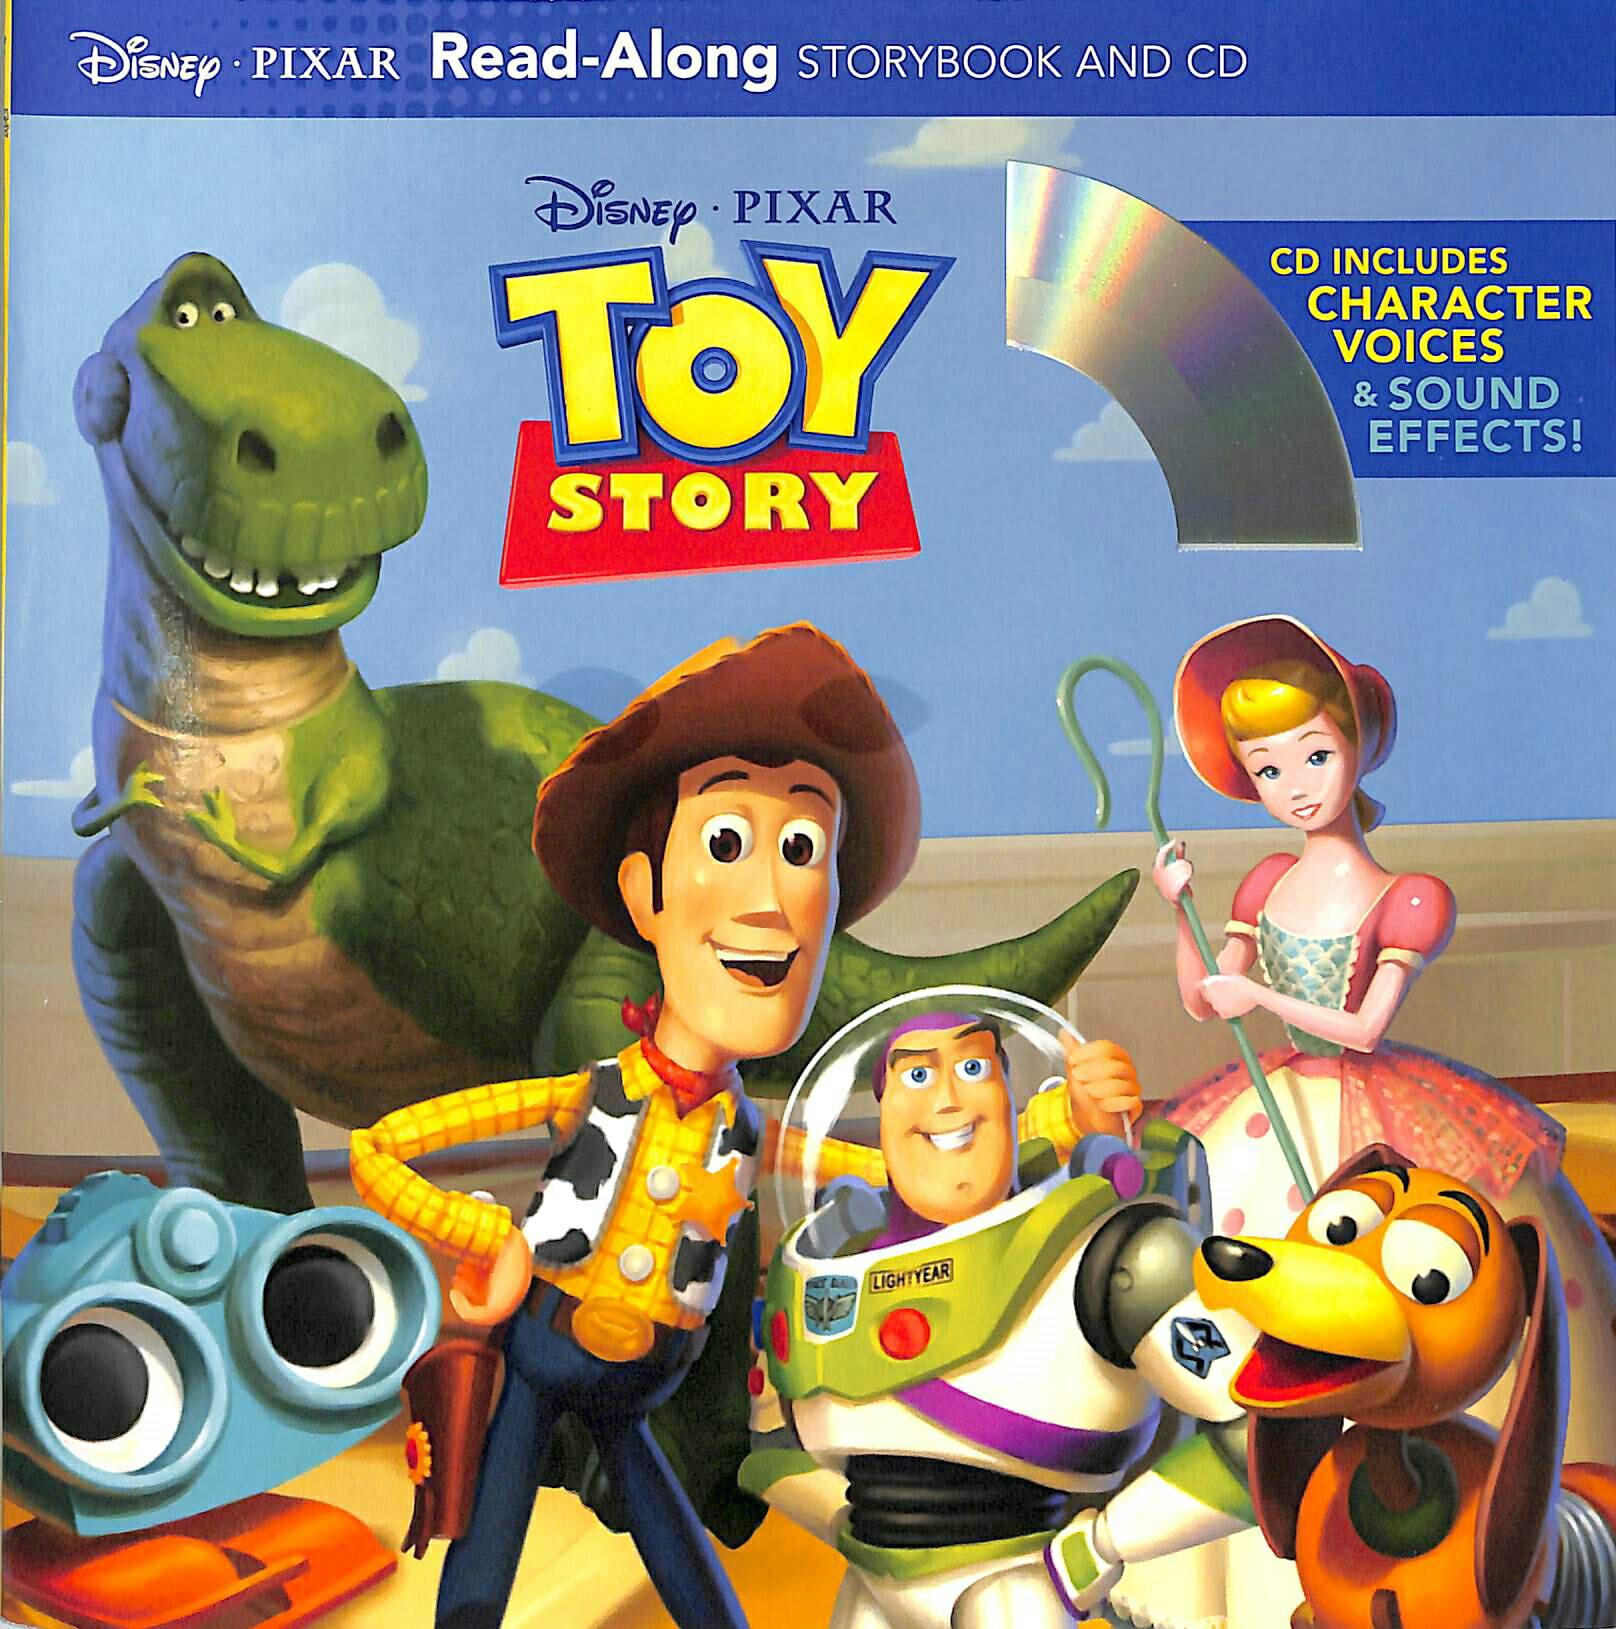 Toy Story Read-Along Storybook And CD 玩具總動員 有聲讀本 (一平裝繪本+一CD)